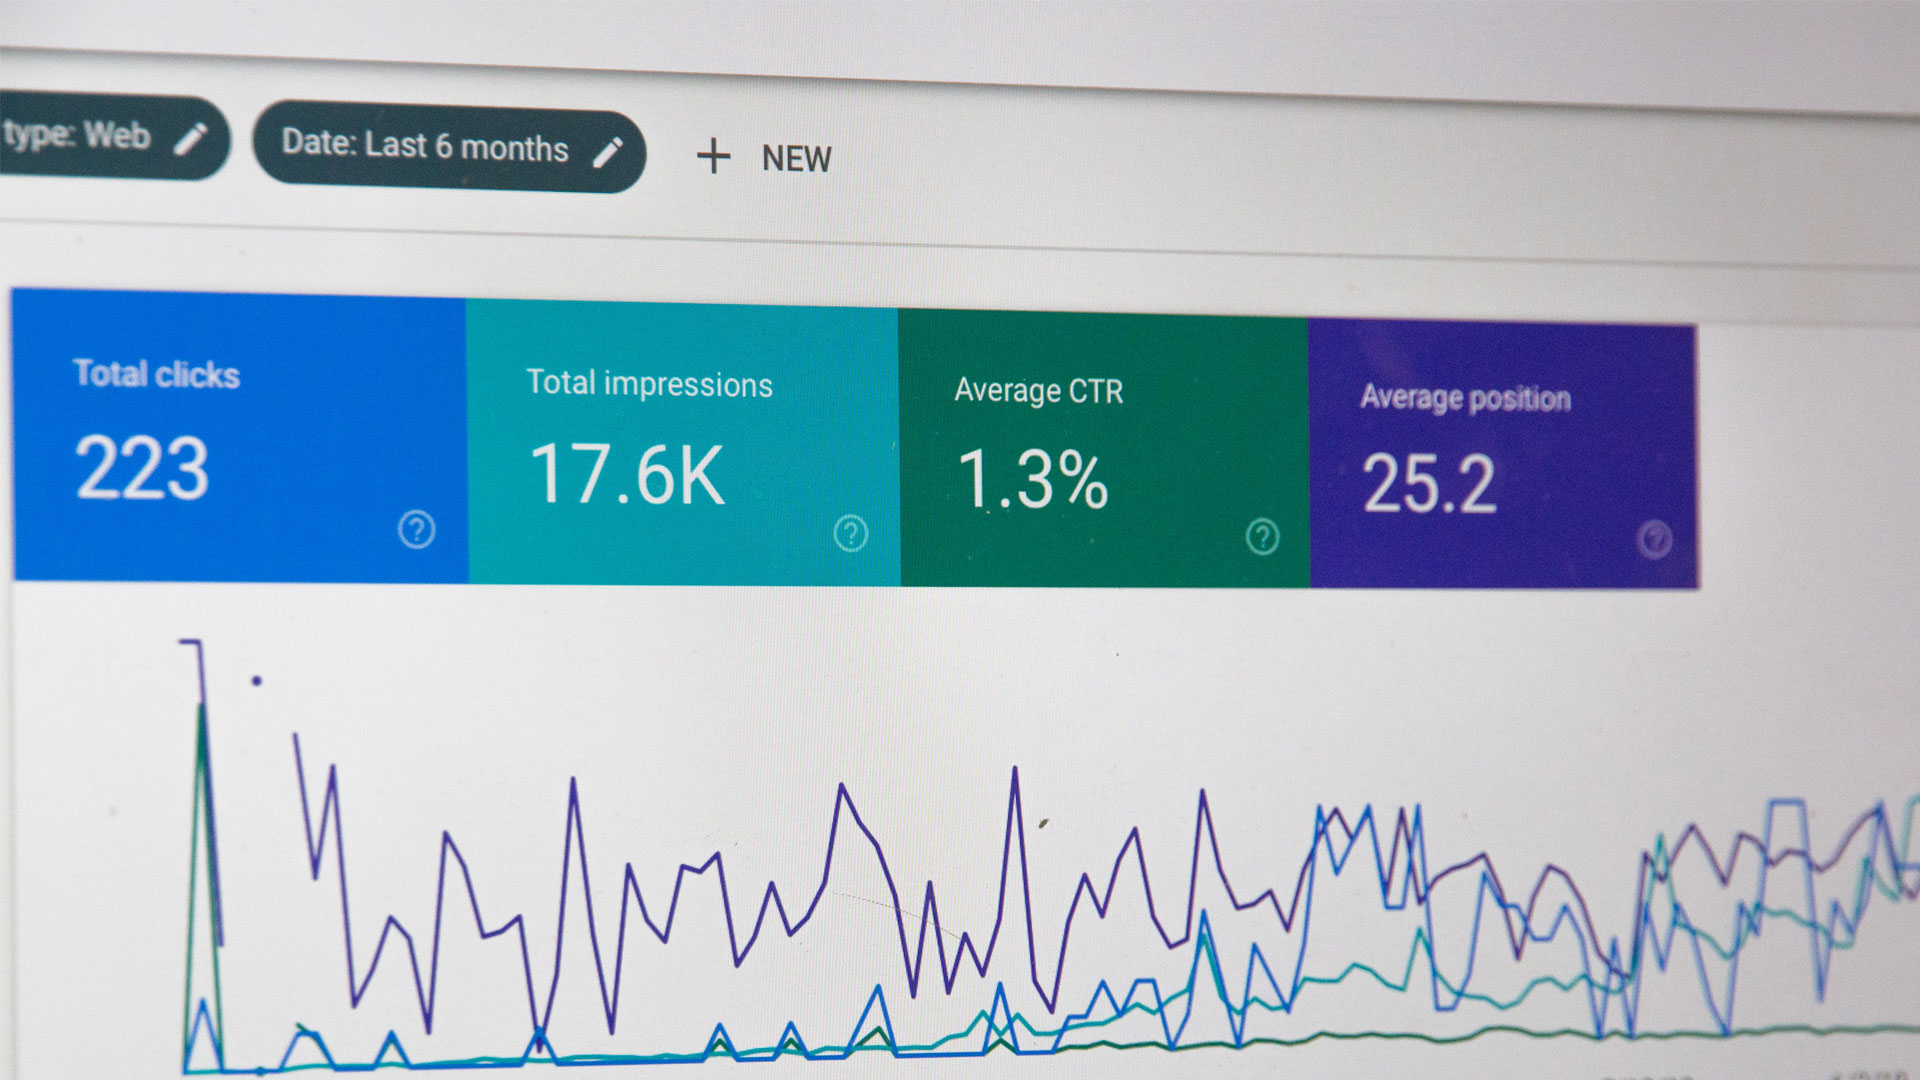 Analytics dashboard showing click, impression, CTR and position statistics